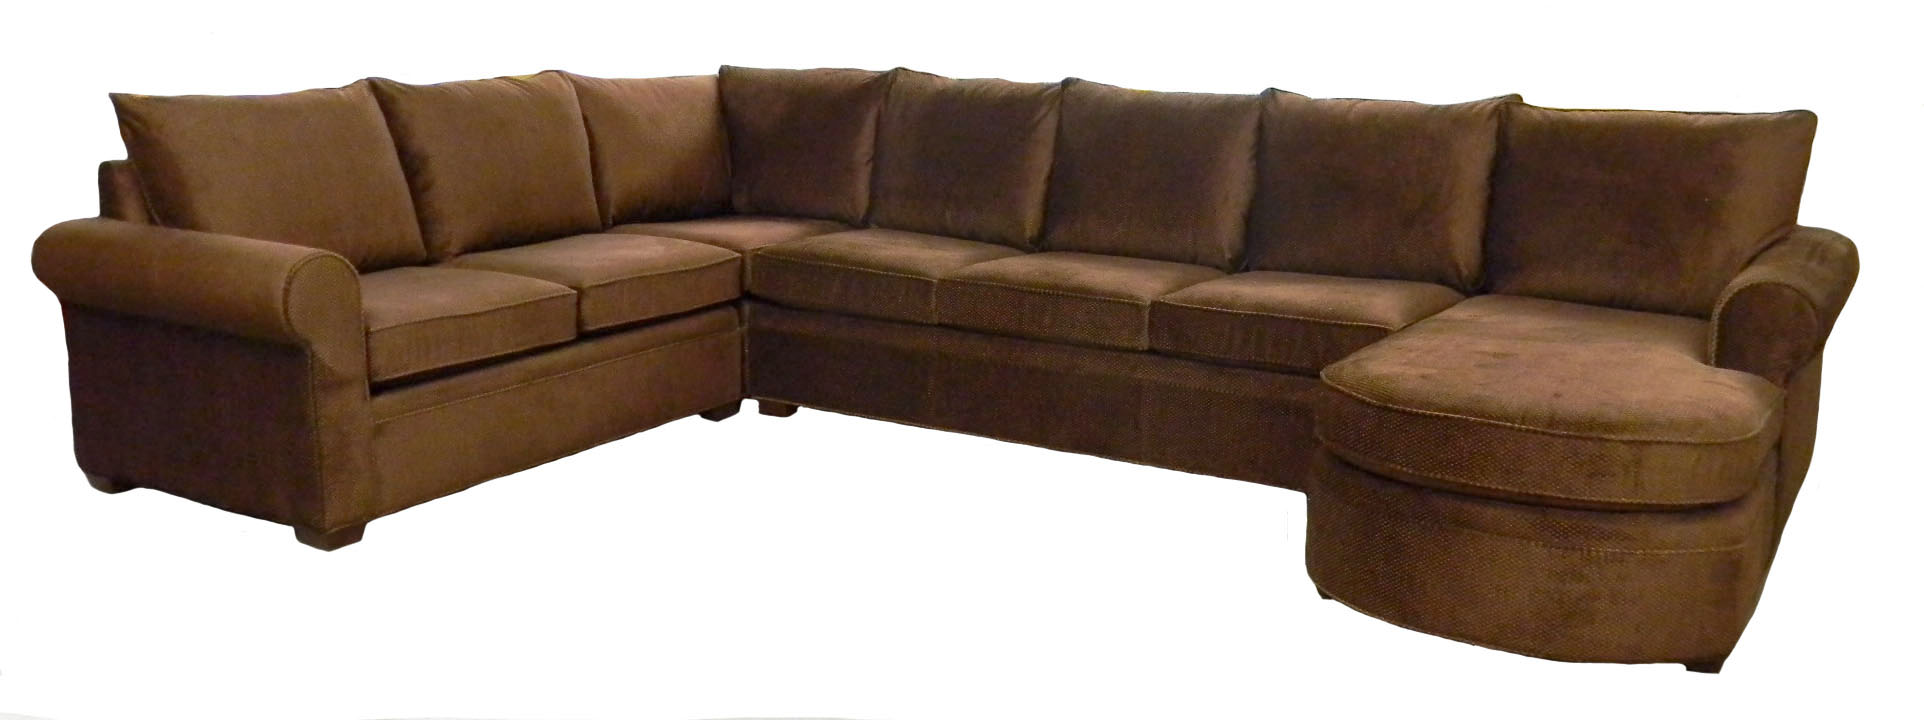 Wrap Around Couch With Sleeper